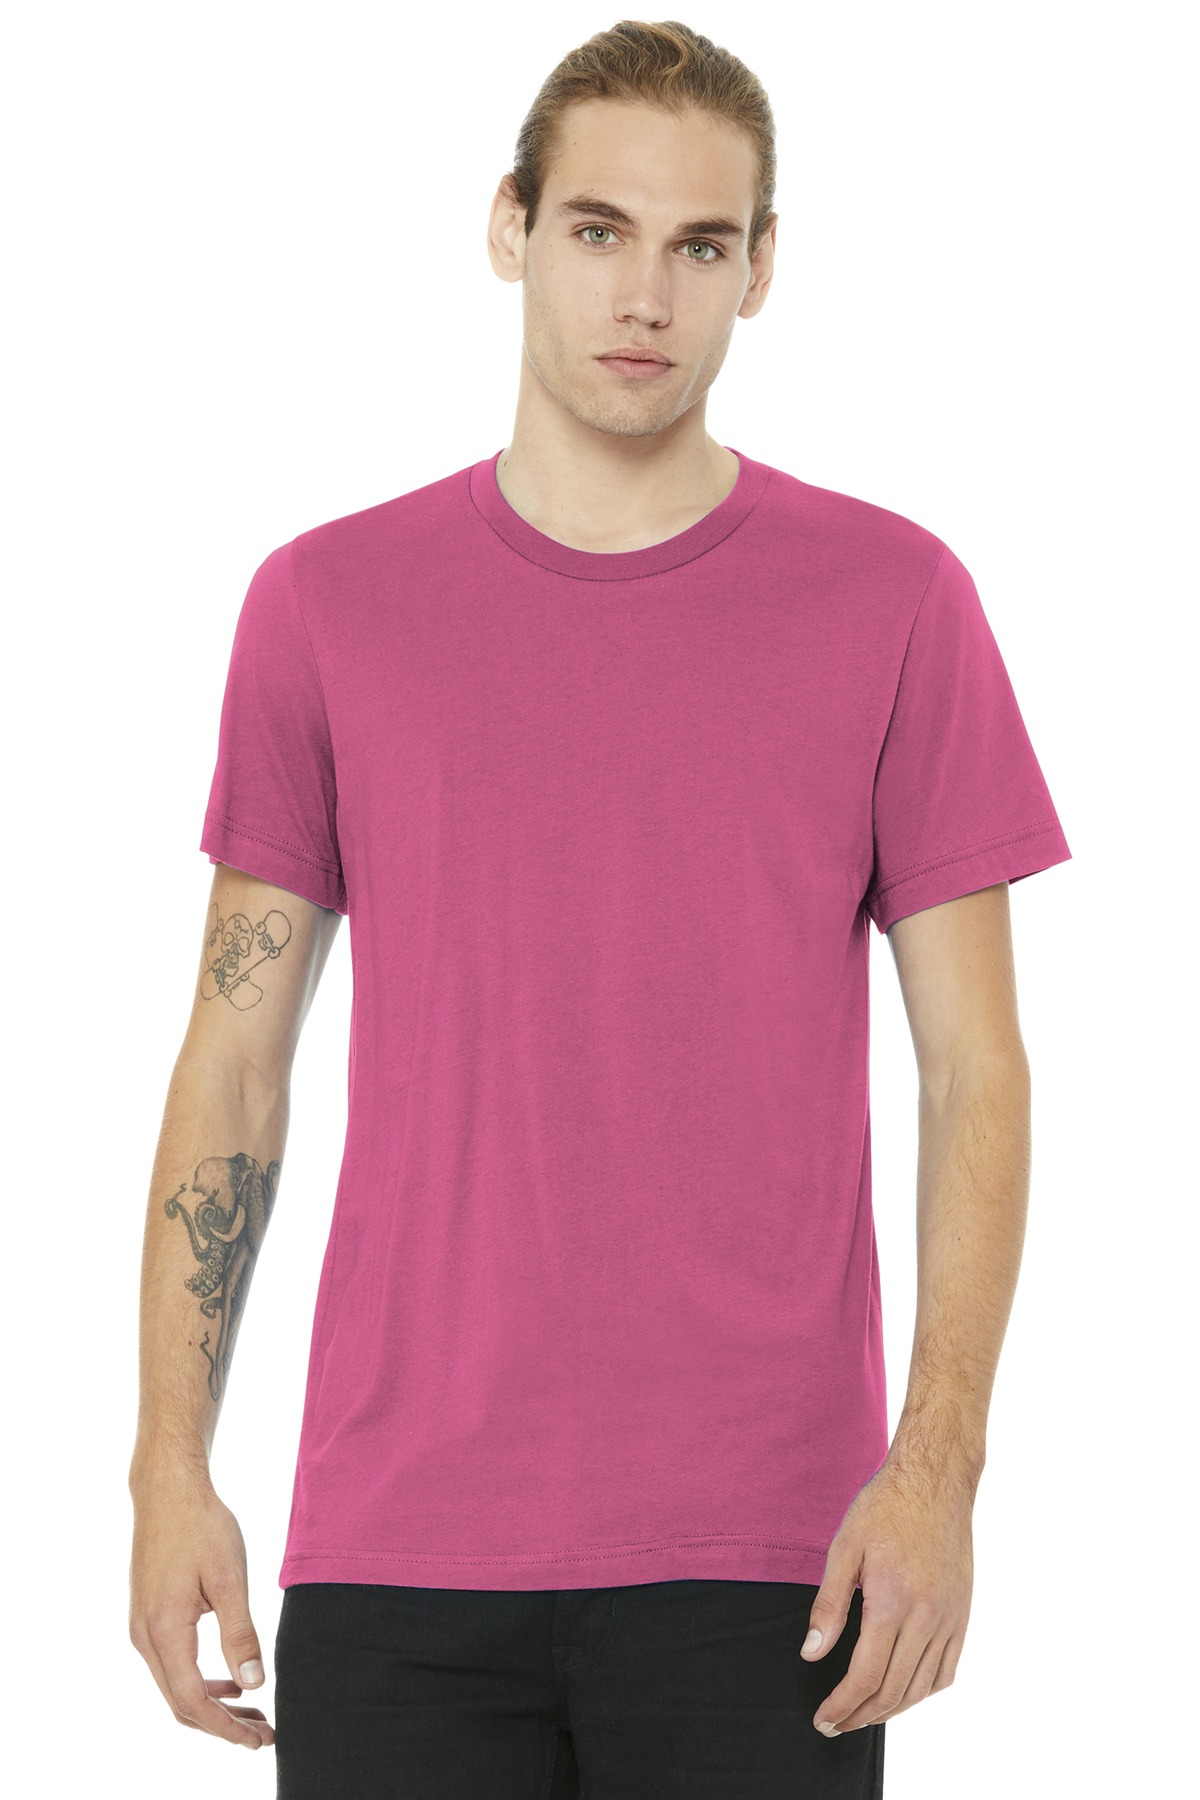 BELLA+CANVAS  ®  Unisex Jersey Short Sleeve Tee. BC3001 - Charity Pink